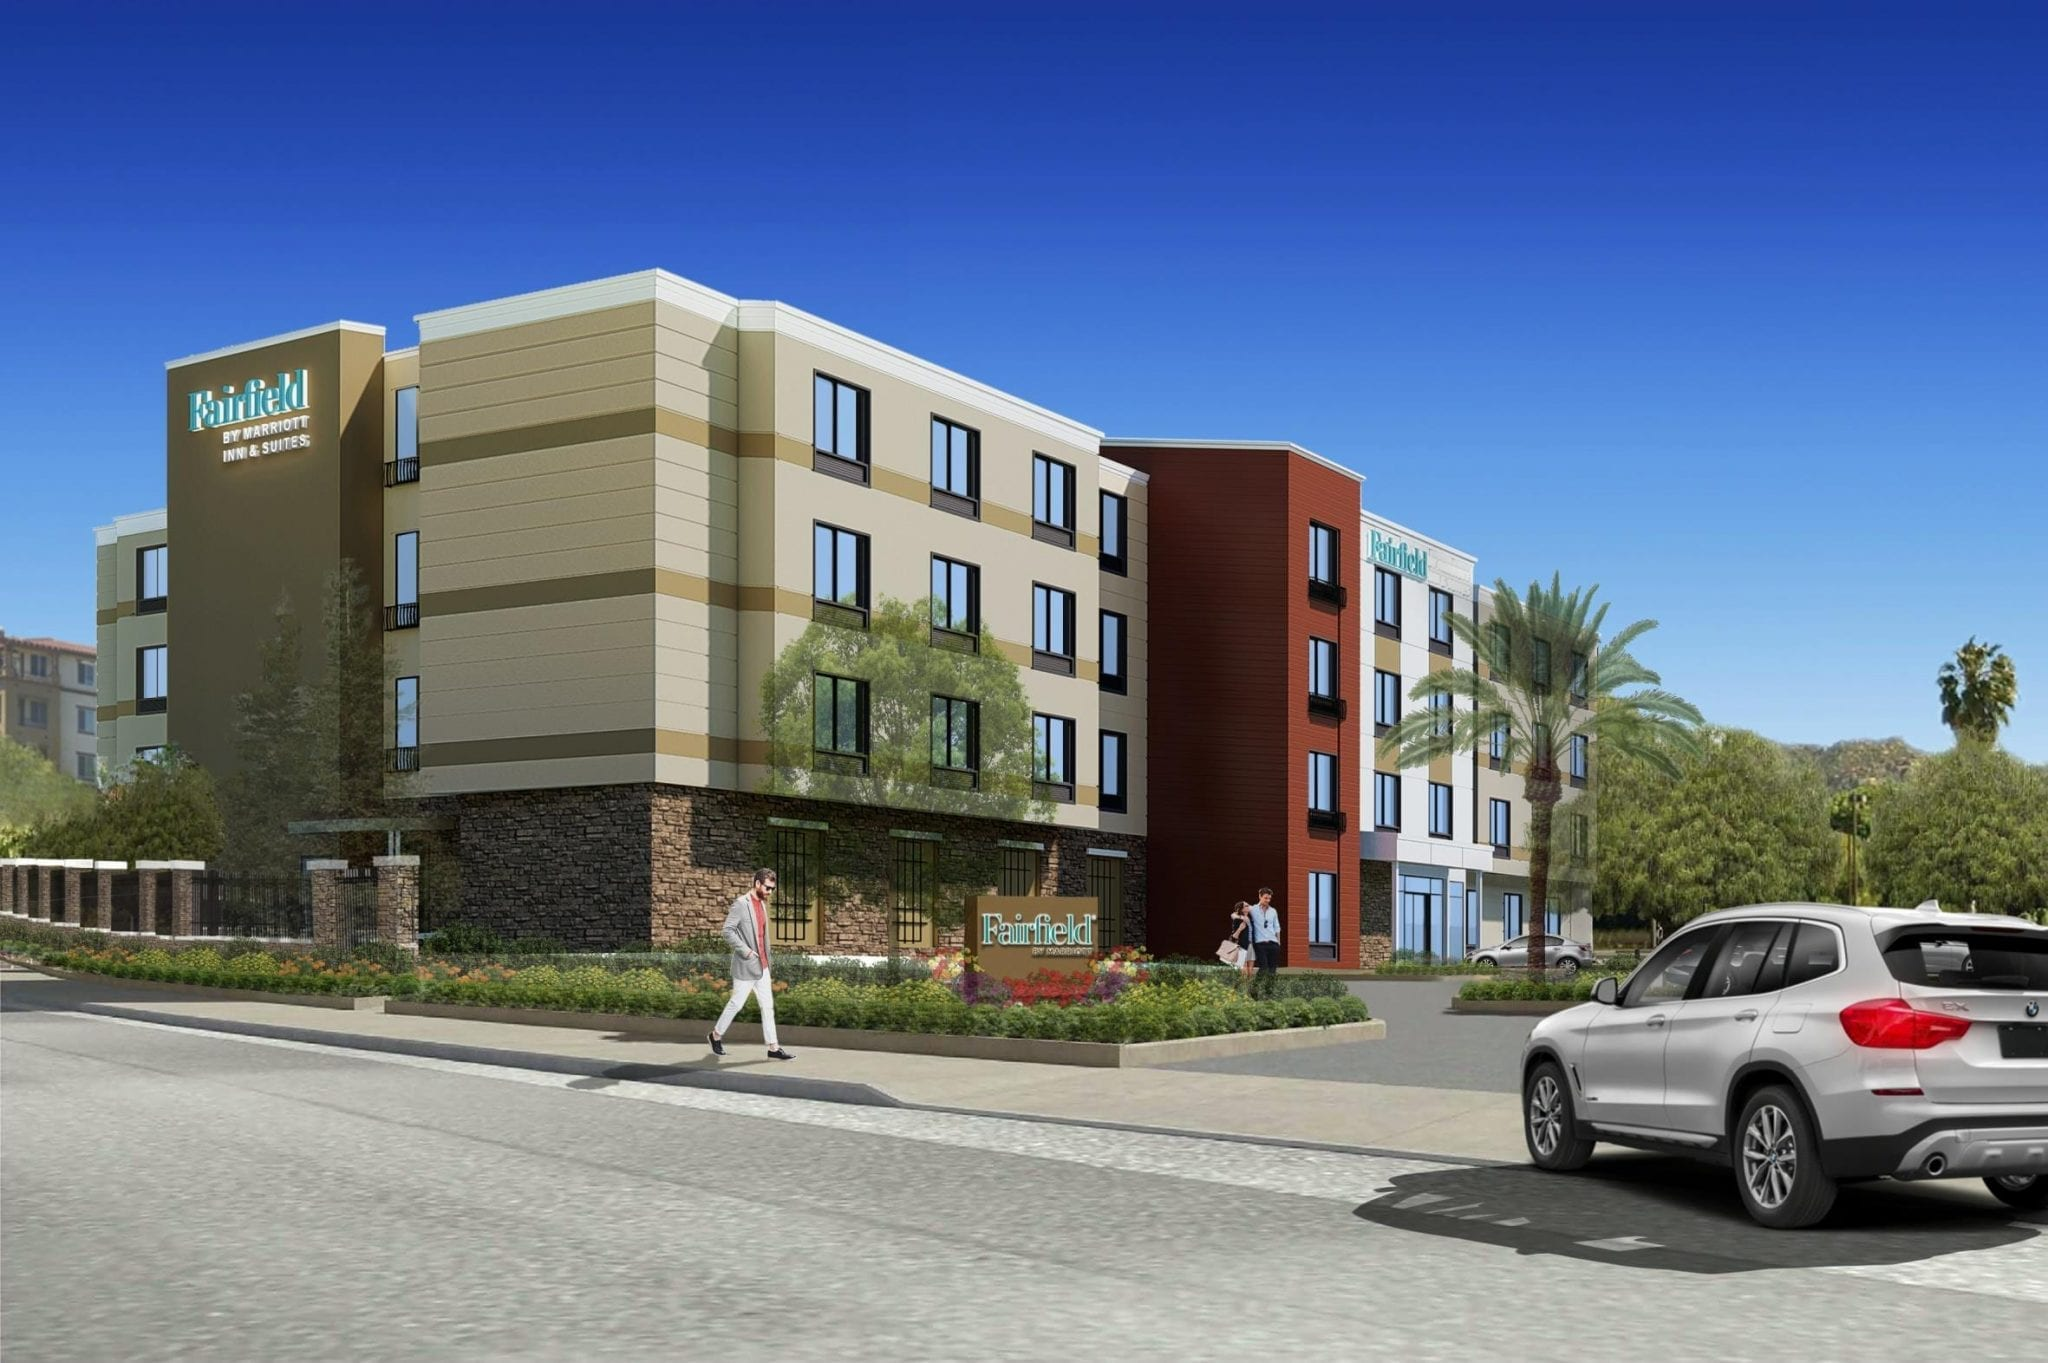 Fairfield Inn & Suites by Marriott | MWT Hotel & Resort Architect